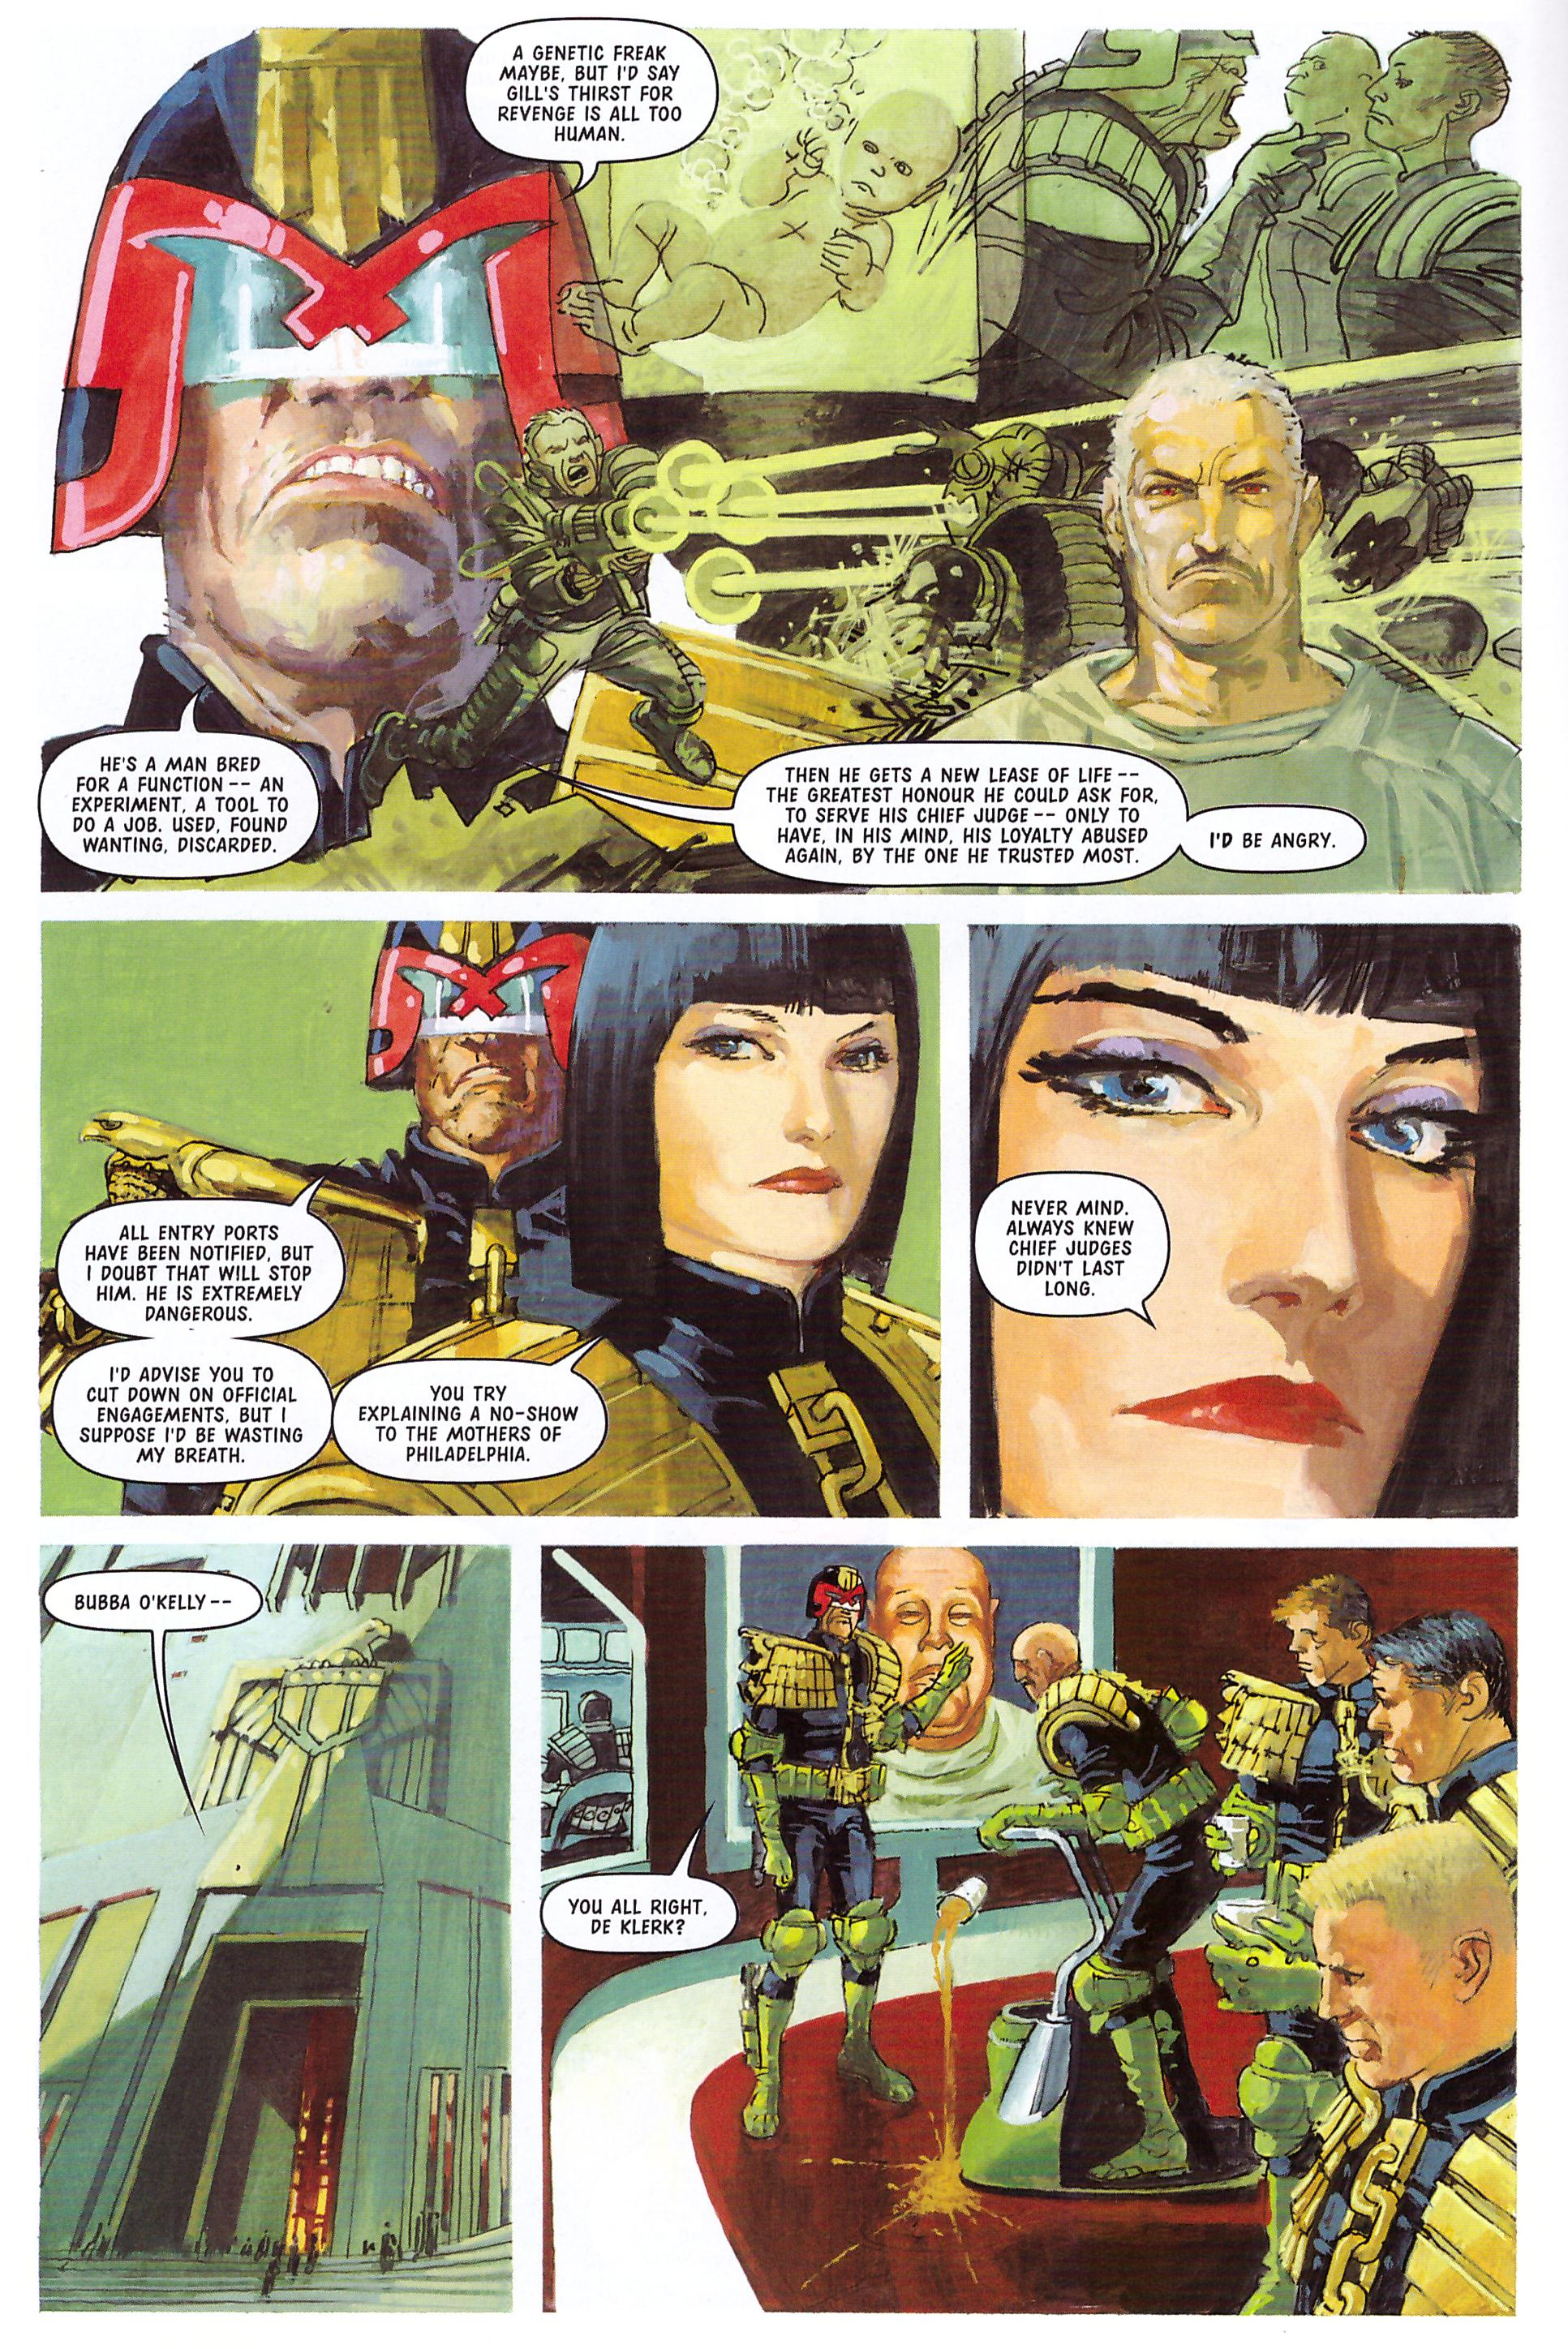 Judge Dredd The Chief Judge's Man review